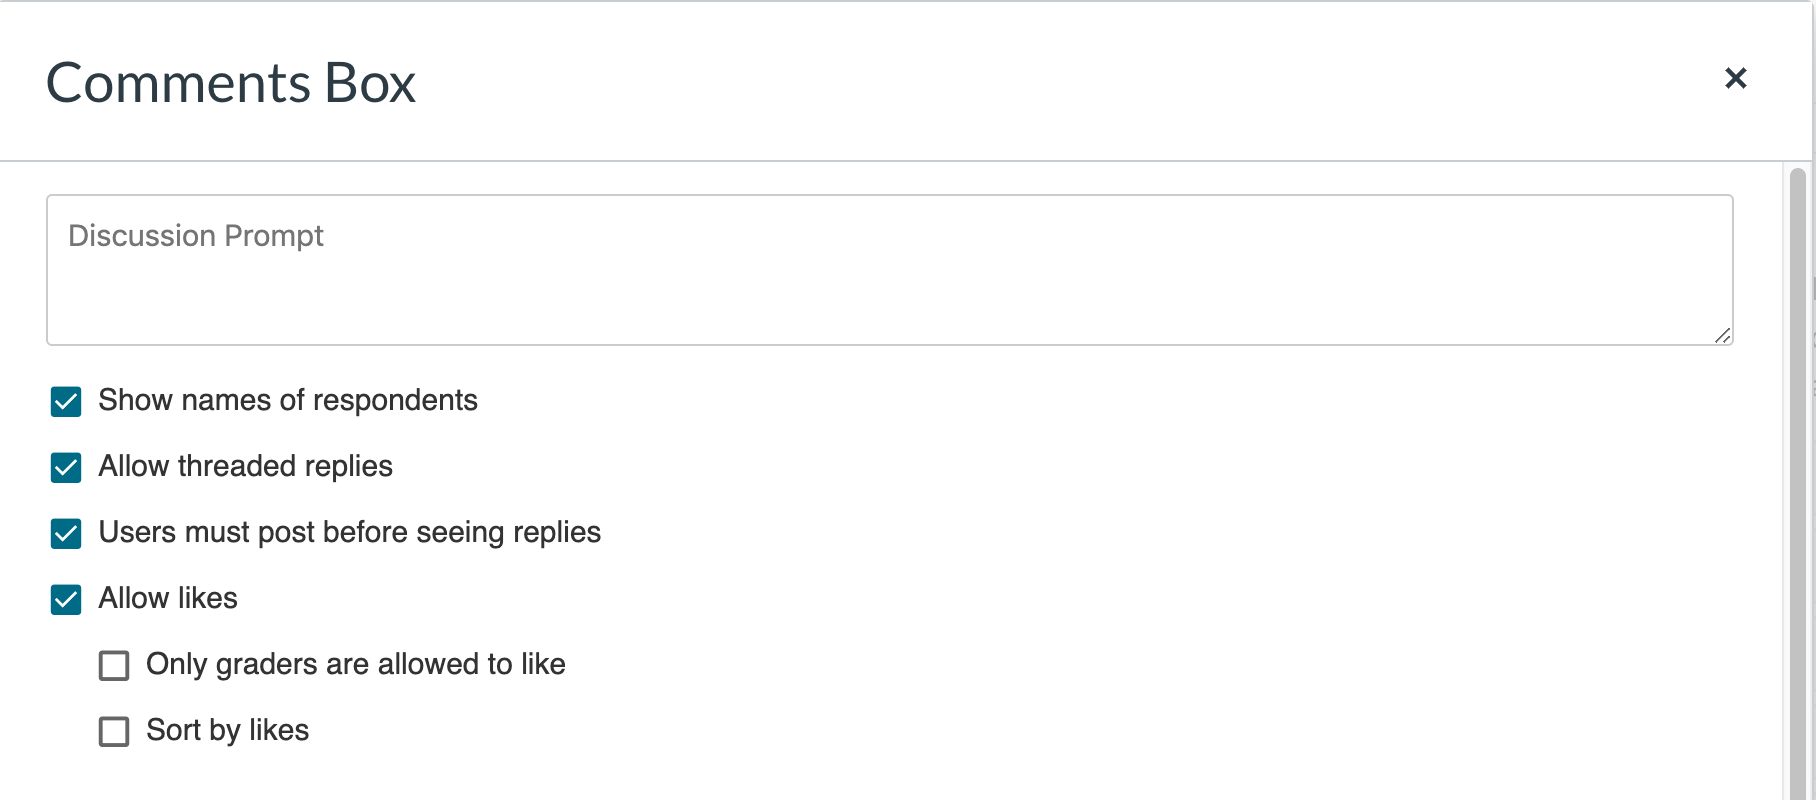 Screenshot of the Comments Box settings, including discussion prompt box, show names of respondents check box, allow threaded replies check box, users must post before seeing replies check box, allow likes check box